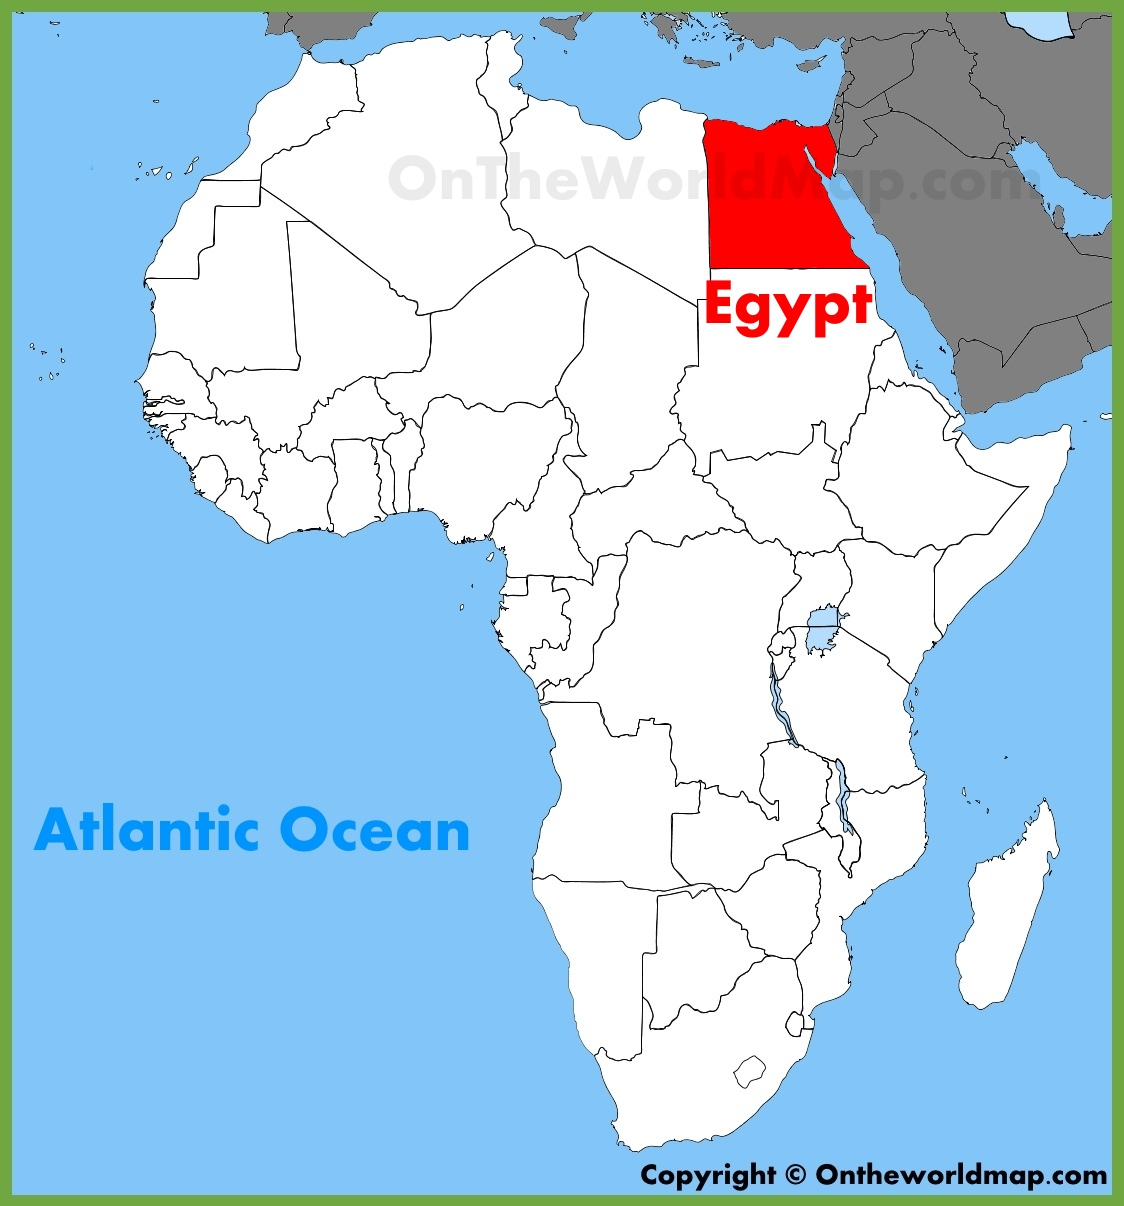 Egypt location on the africa map egypt location on the africa map gumiabroncs Choice Image